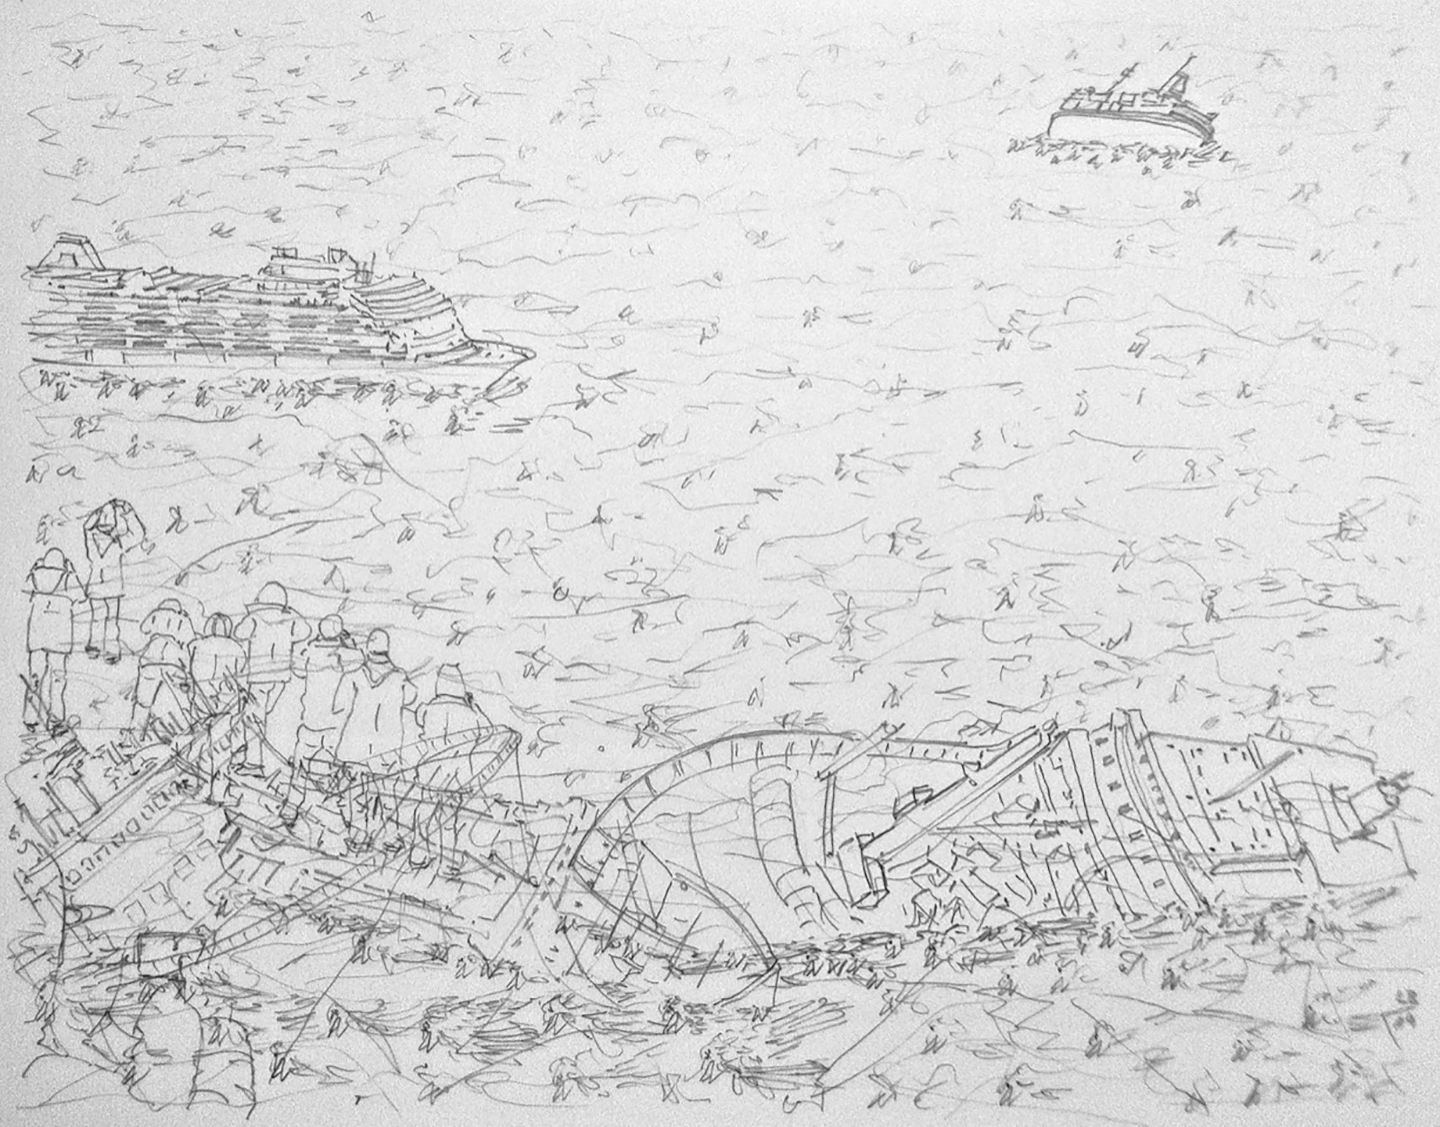 Leo Brunschwiler, sinking ships, dead redtails and tourists, pencil on polyester foil, 28 cm x 35 cm , 2019